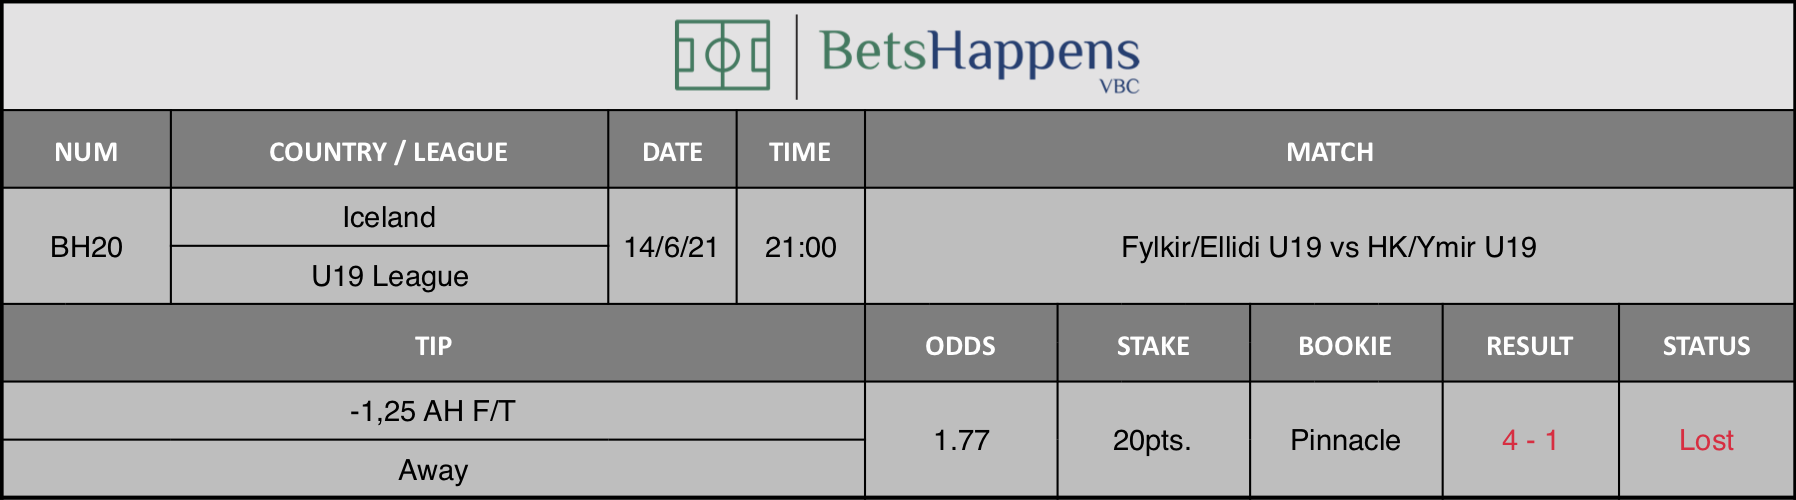 Results of our tip for the Fylkir/Ellidi U19 vs HK/Ymir U19 Match -1,25 AH F/T Away is recommended.